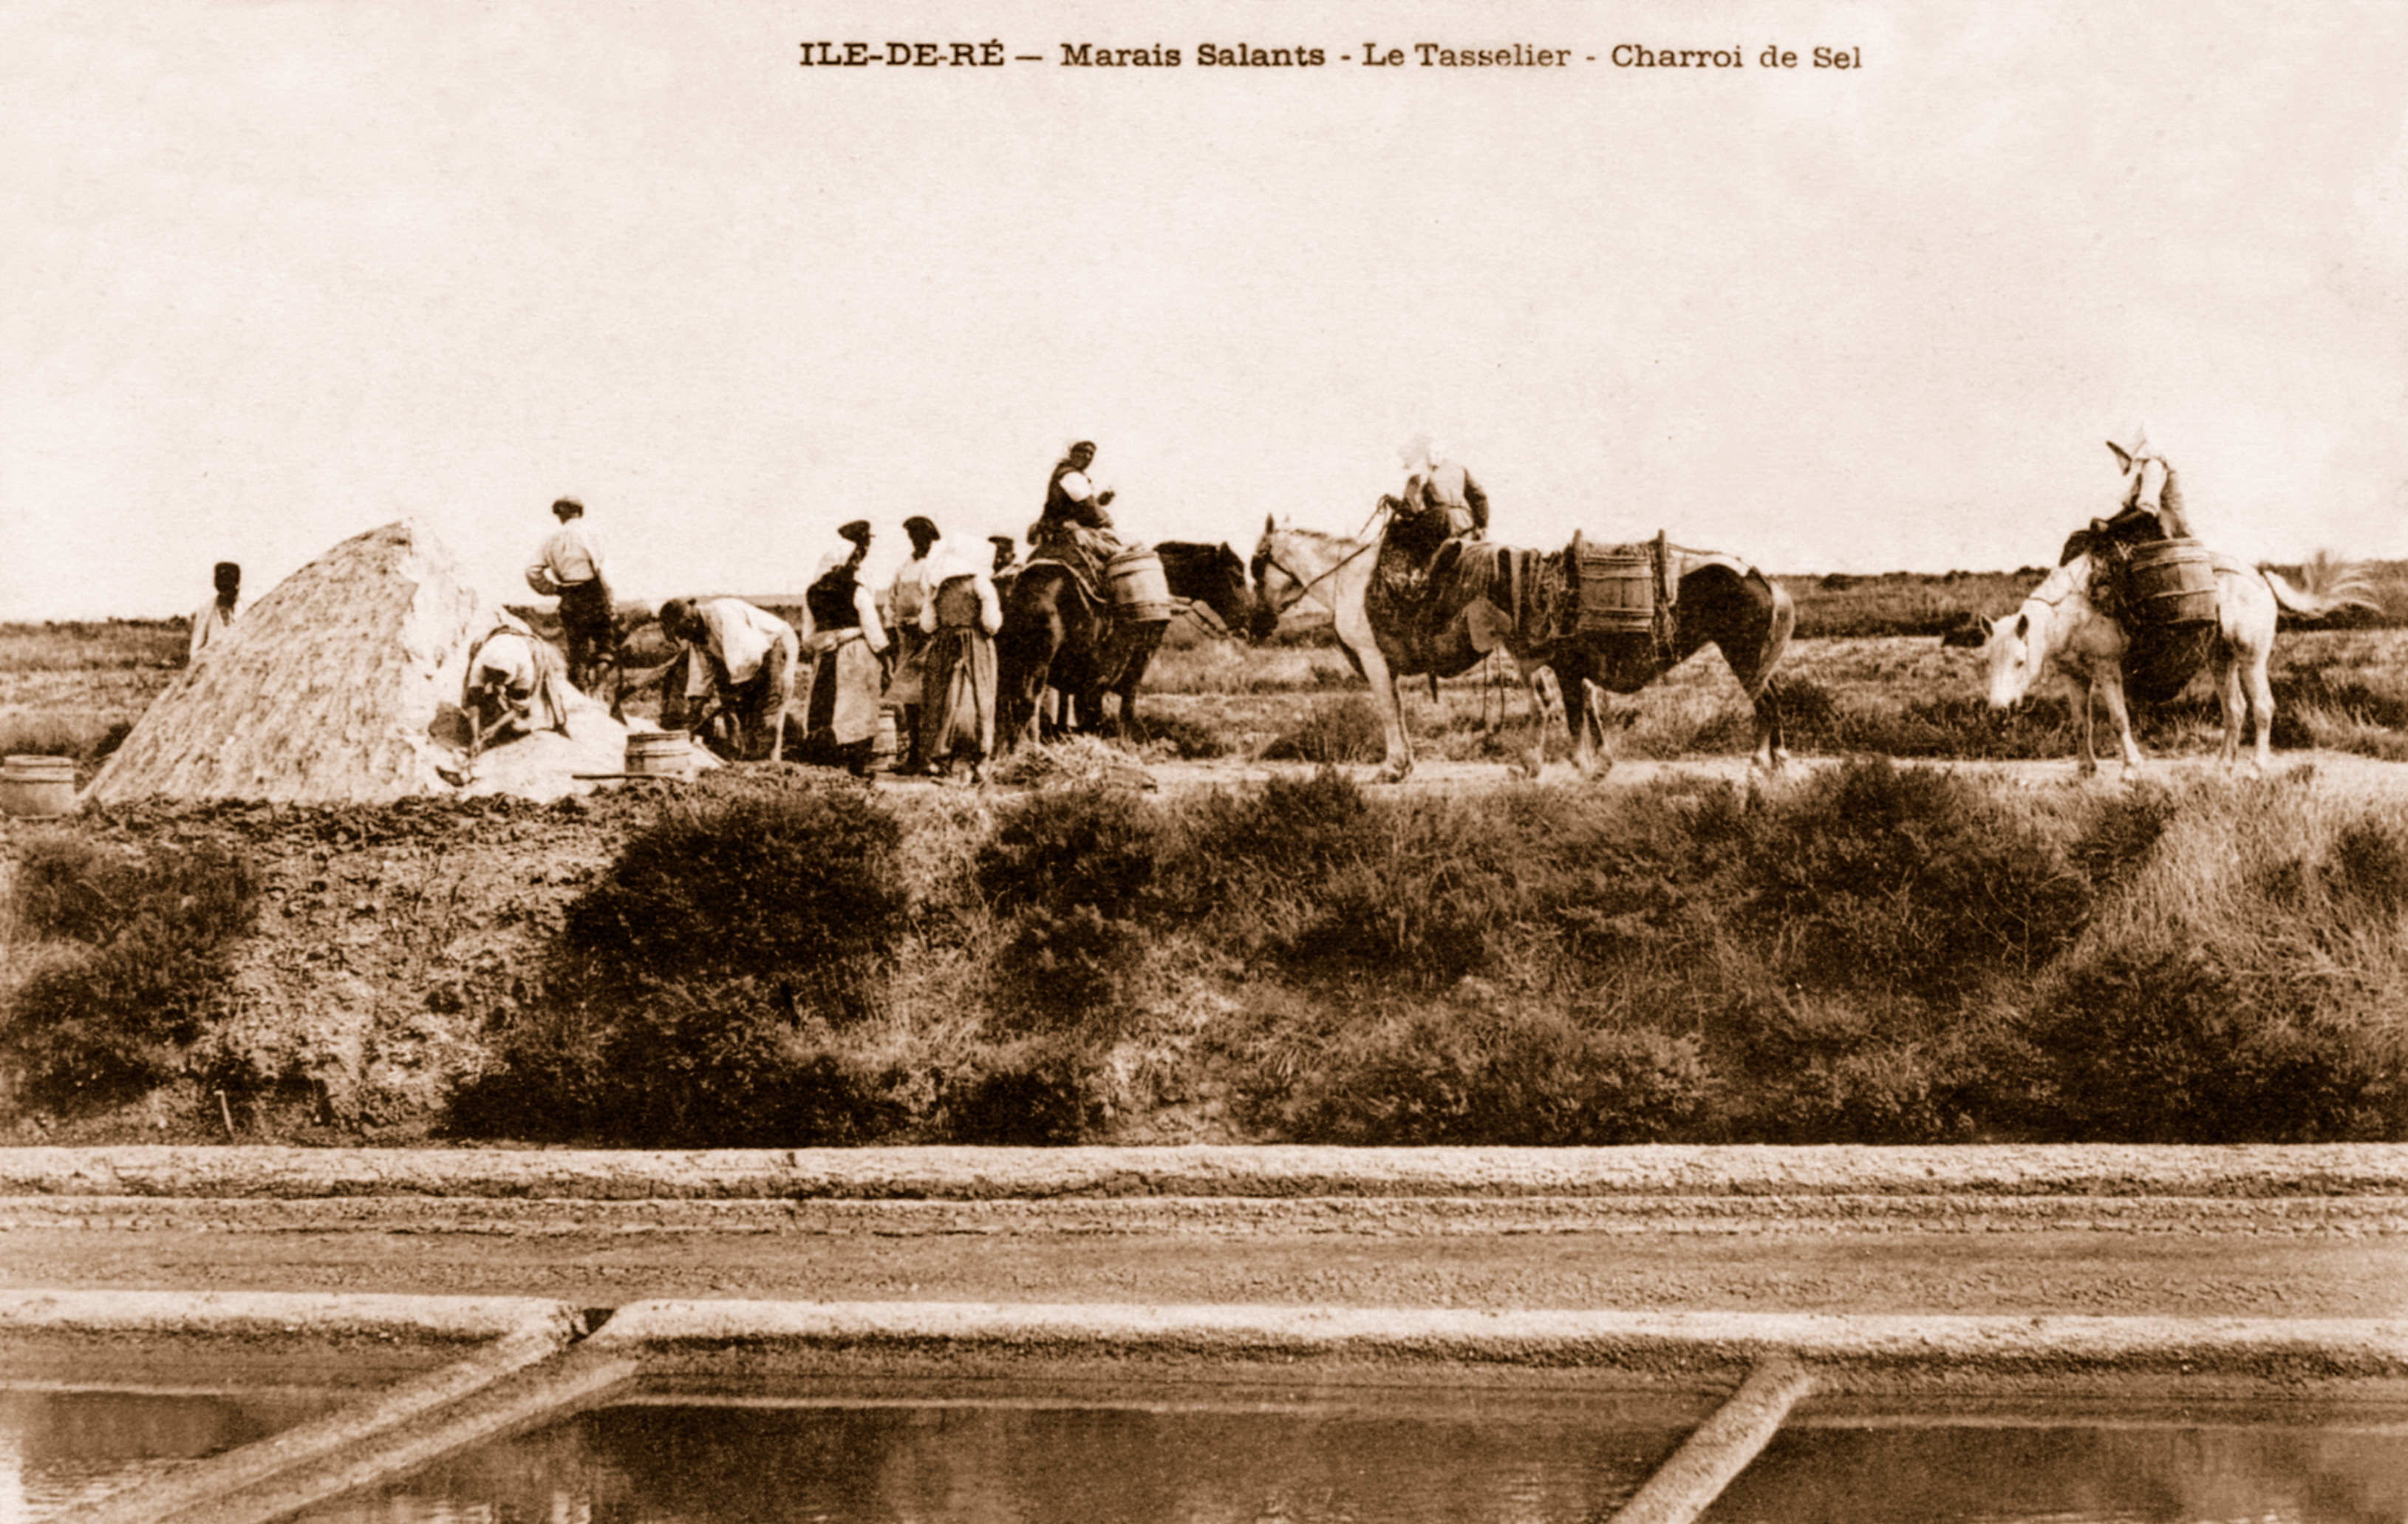 Photo des marais salants rétais en 1903